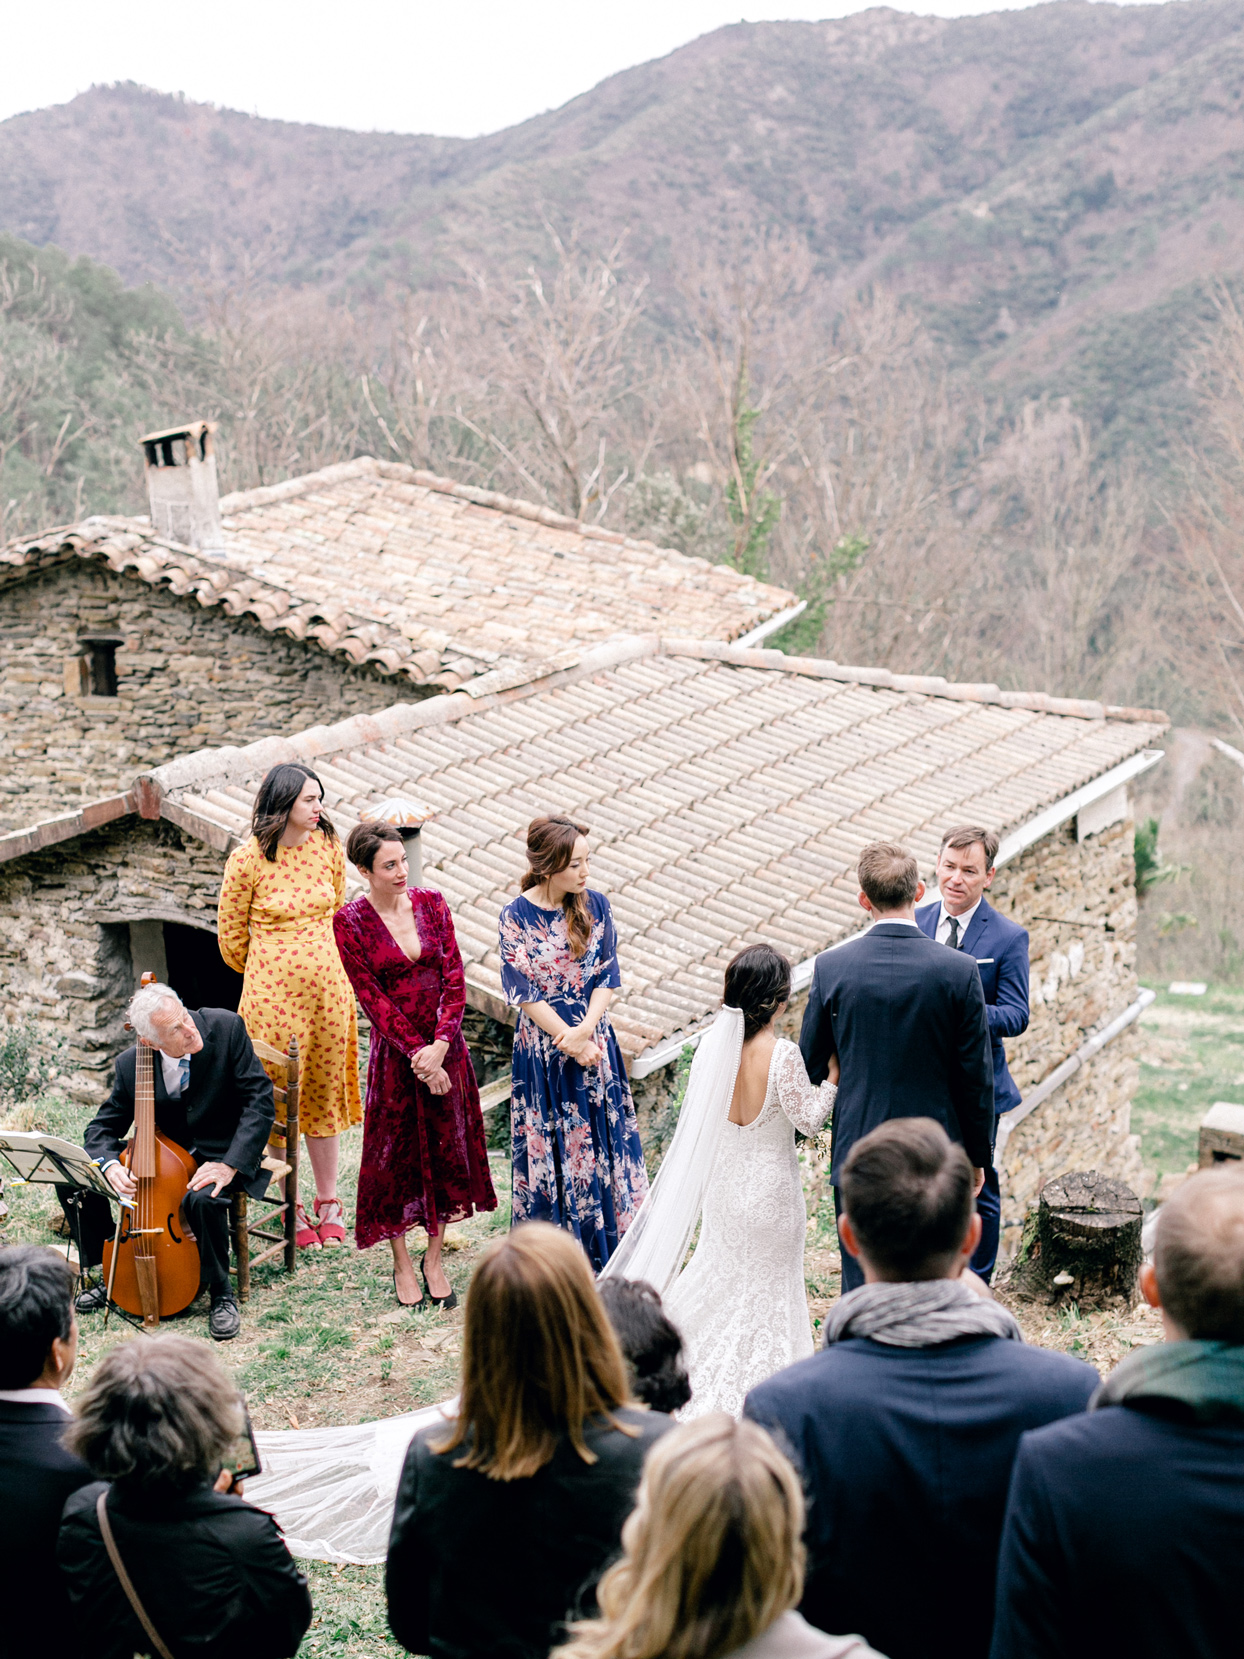 guests standing and viewing wedding ceremony on french hillside